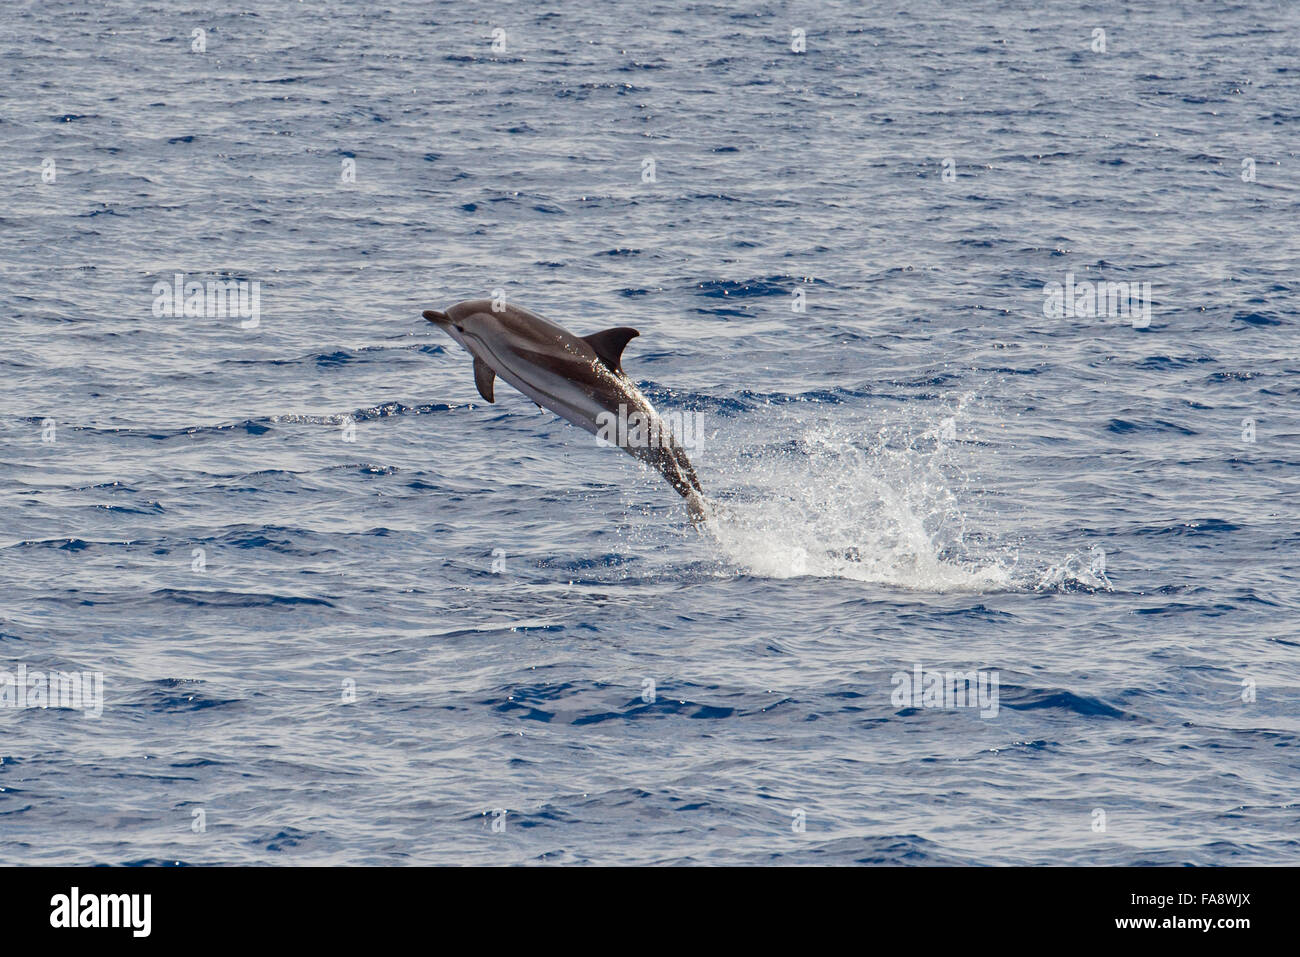 Striped Dolphin, Stenella coeruleoalba, breaching high in the air, Azores, Atlantic Ocean. - Stock Image